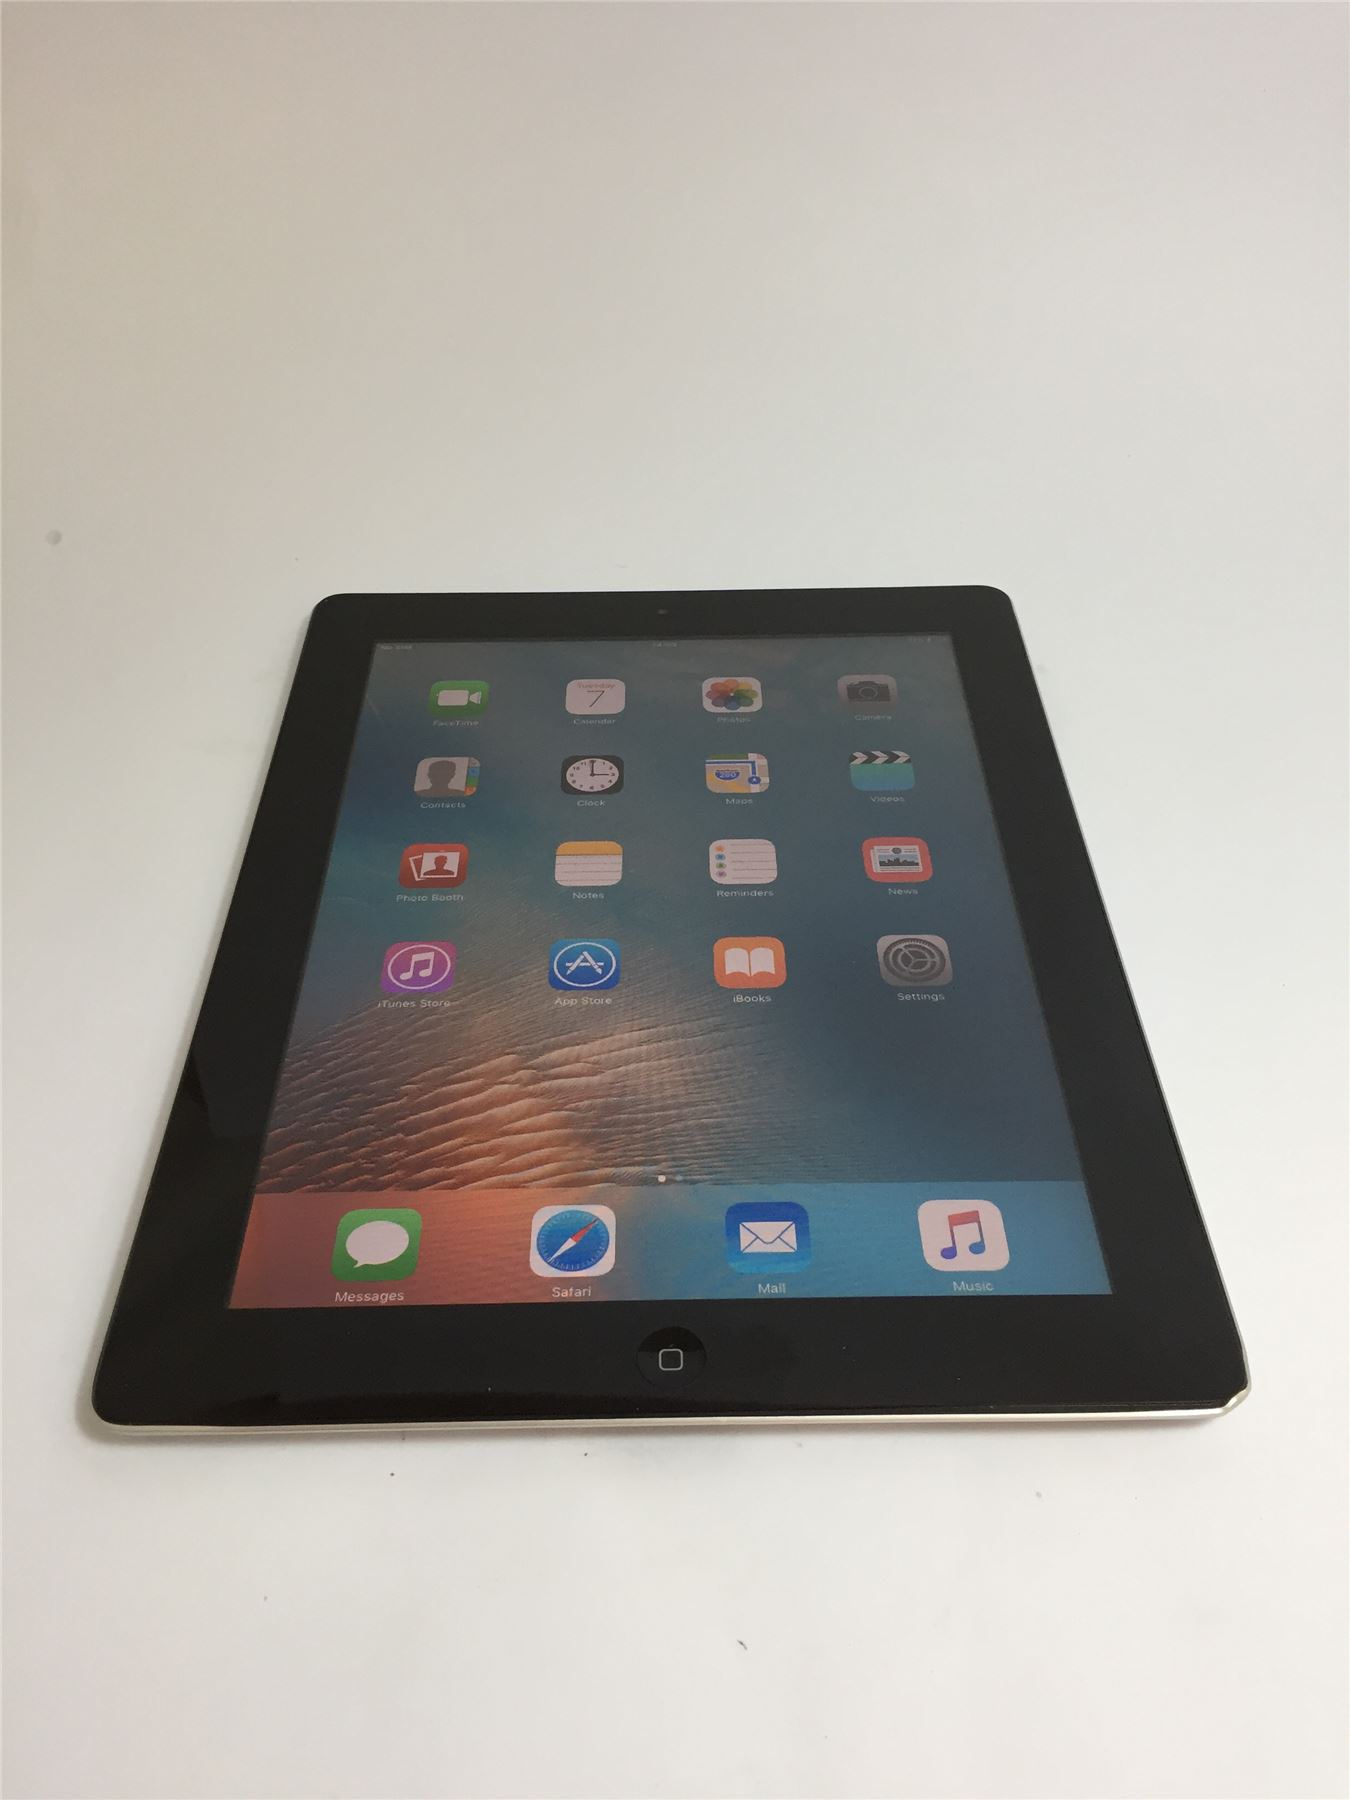 apple ipad 2 a1396 black 32gb wifi and 3g ios 9 3 5. Black Bedroom Furniture Sets. Home Design Ideas